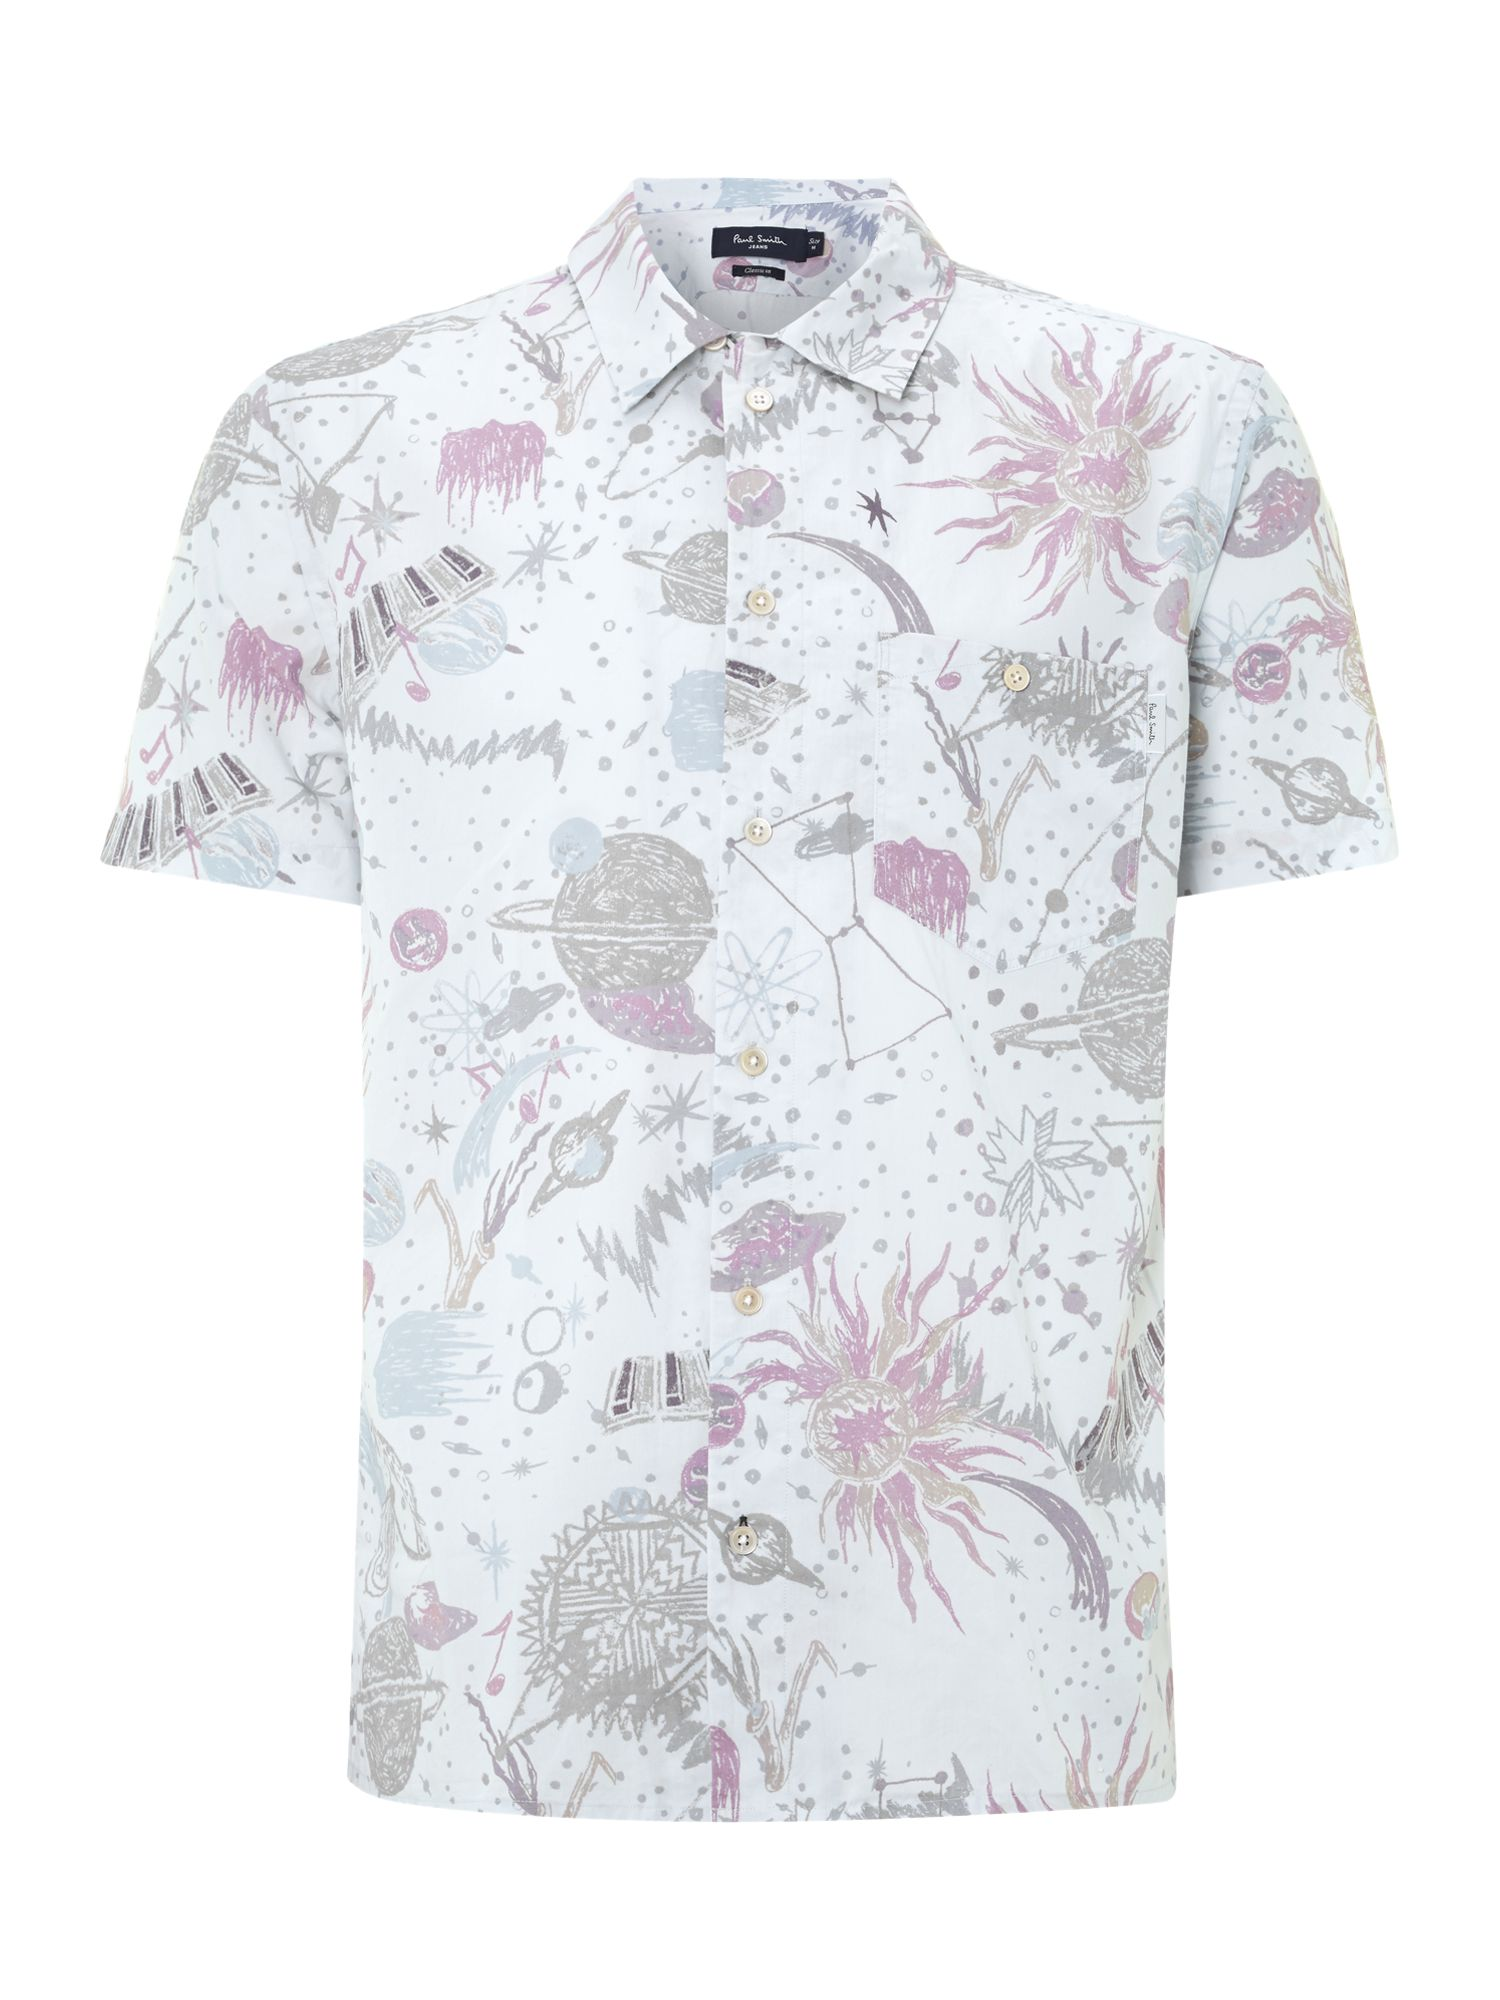 Short sleeve space print shirt